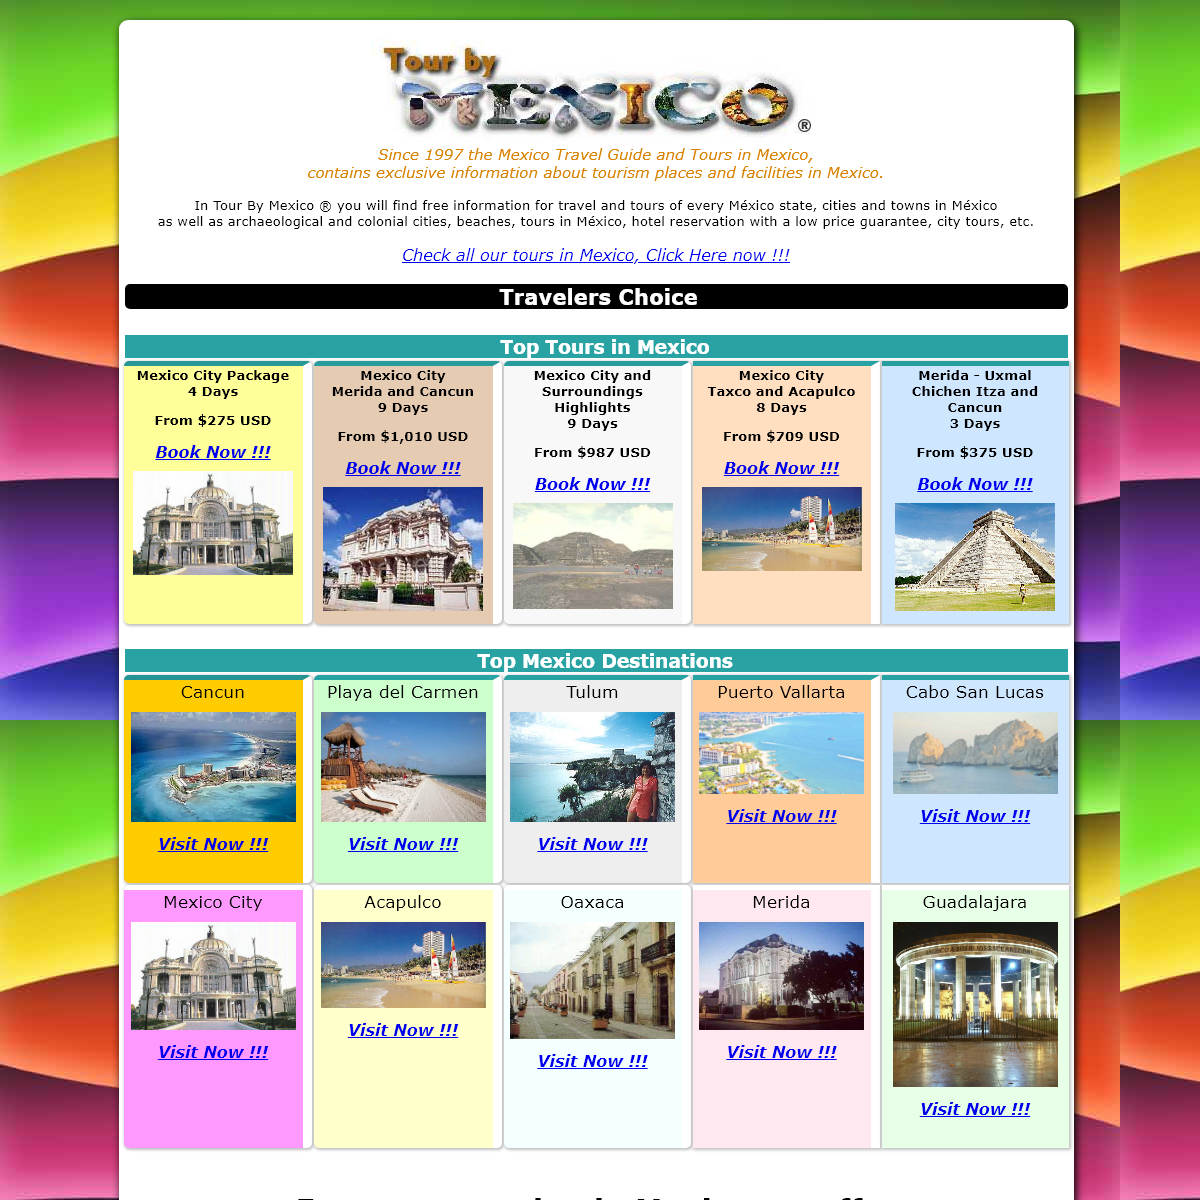 Tour By Mexico - The Mexico Travel Guide and Tours in Mexico, hotels and more.